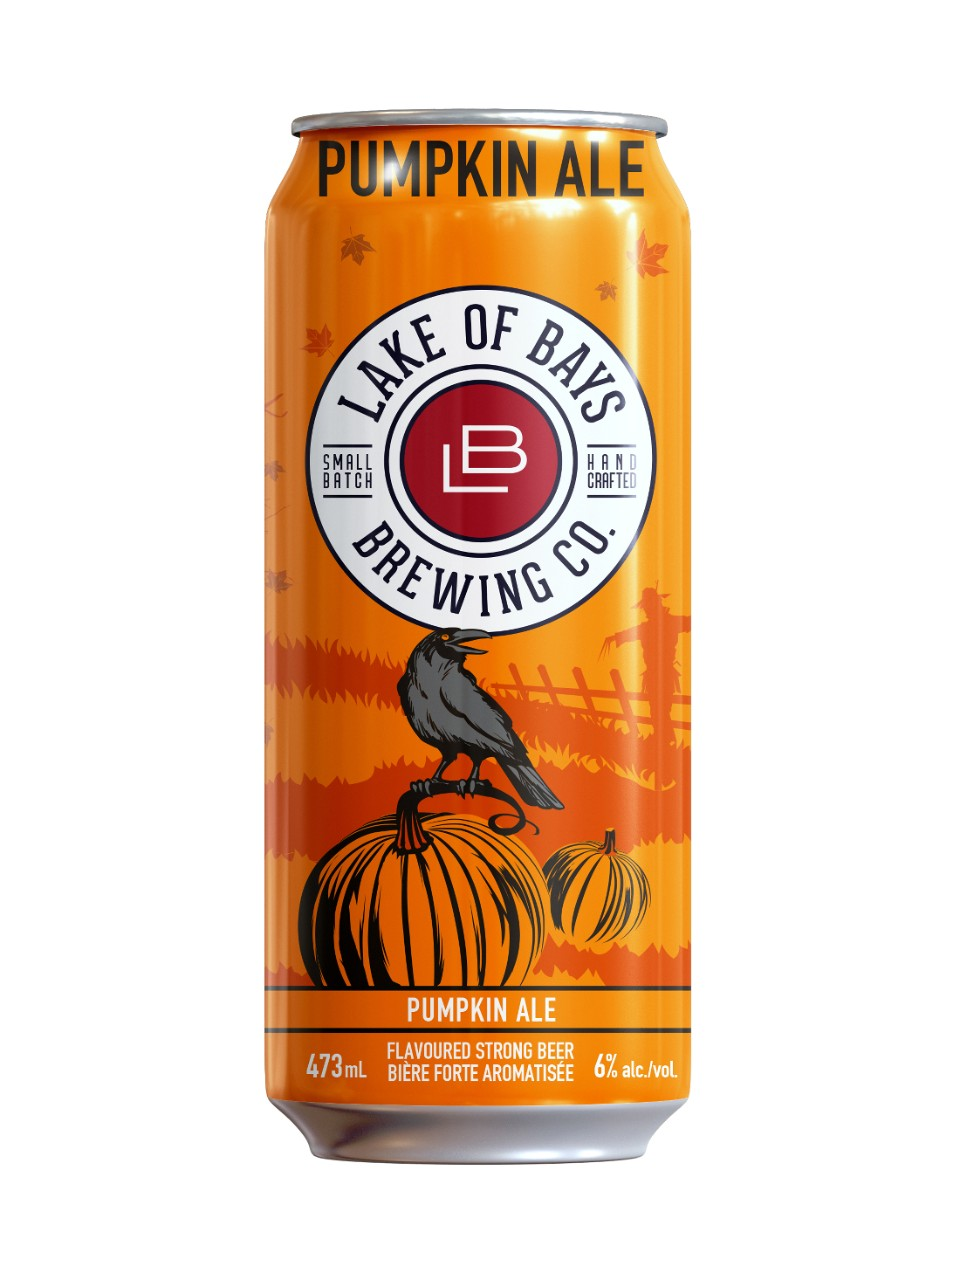 Lake of Bays Pumpkin Ale from LCBO